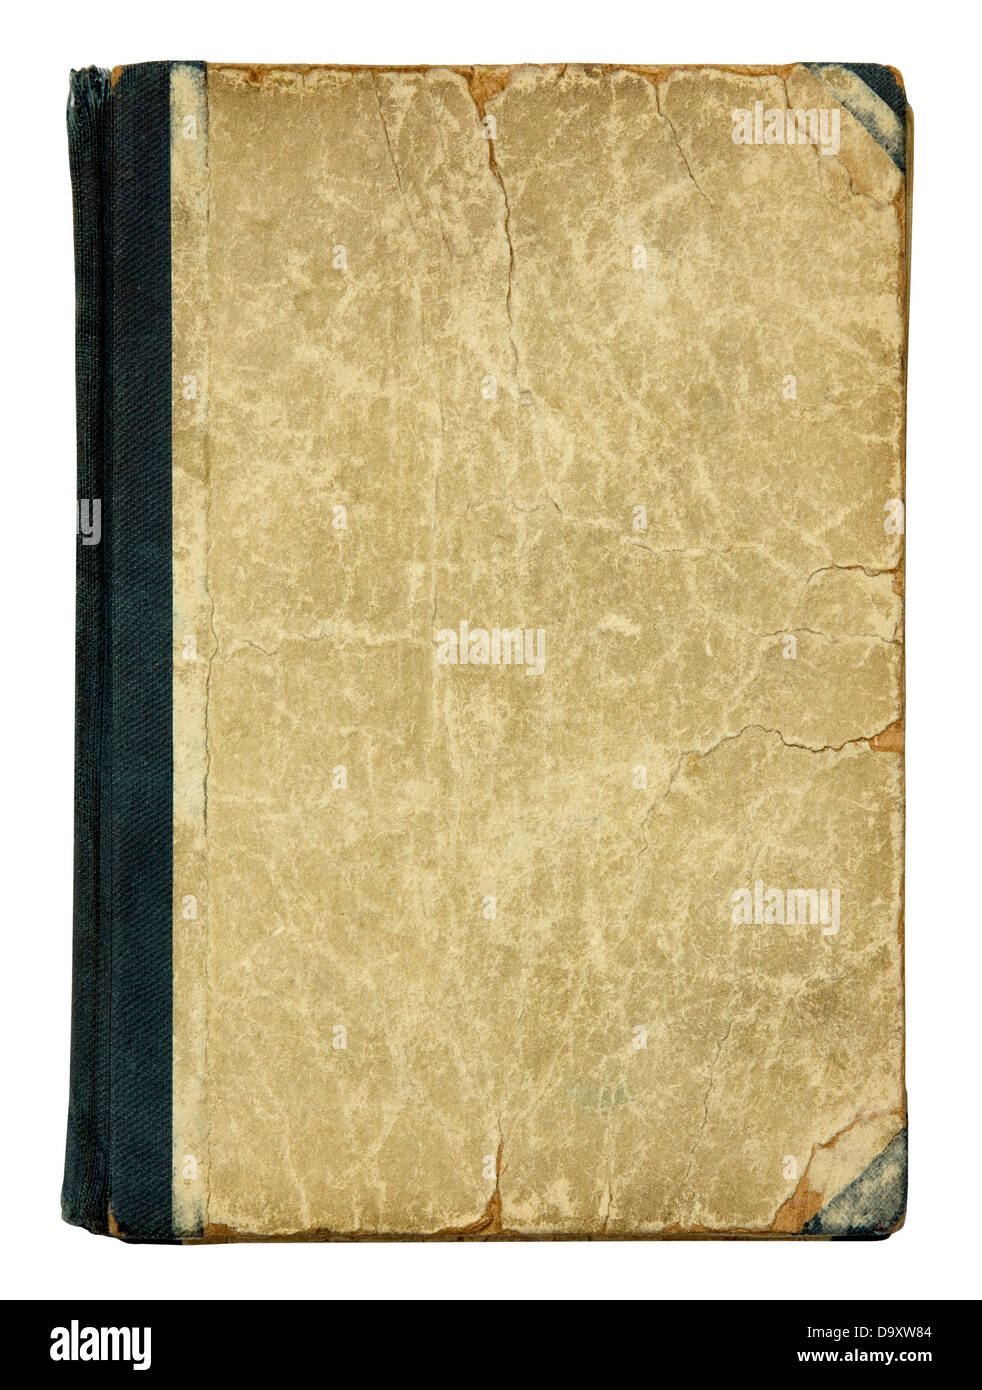 Old Fashioned Book Cover : Old fashioned ancient antique book cover stock photos